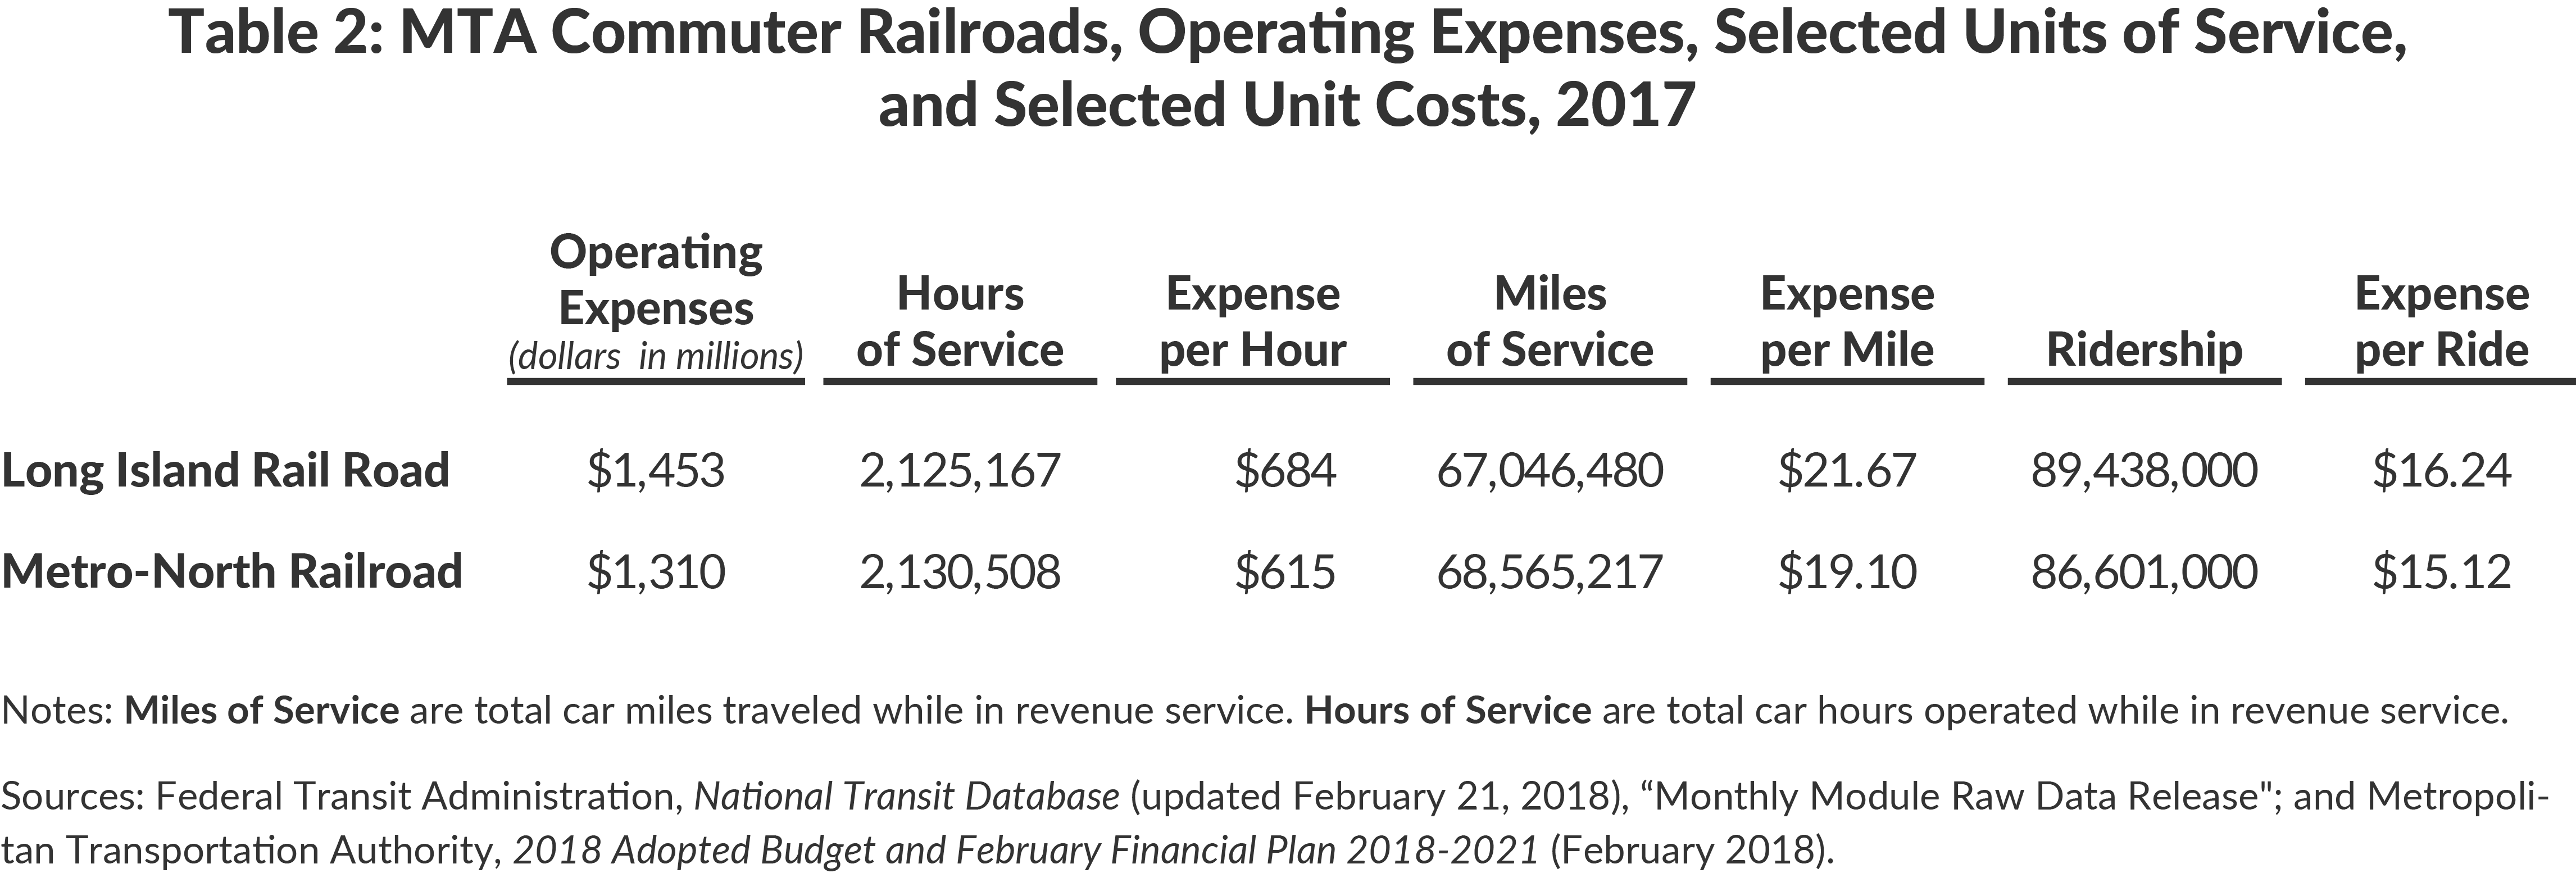 Table 2: MTA Commuter Railroads, Operating Expenses, Selected Units of Service, and Selected Unit Costs, 2017